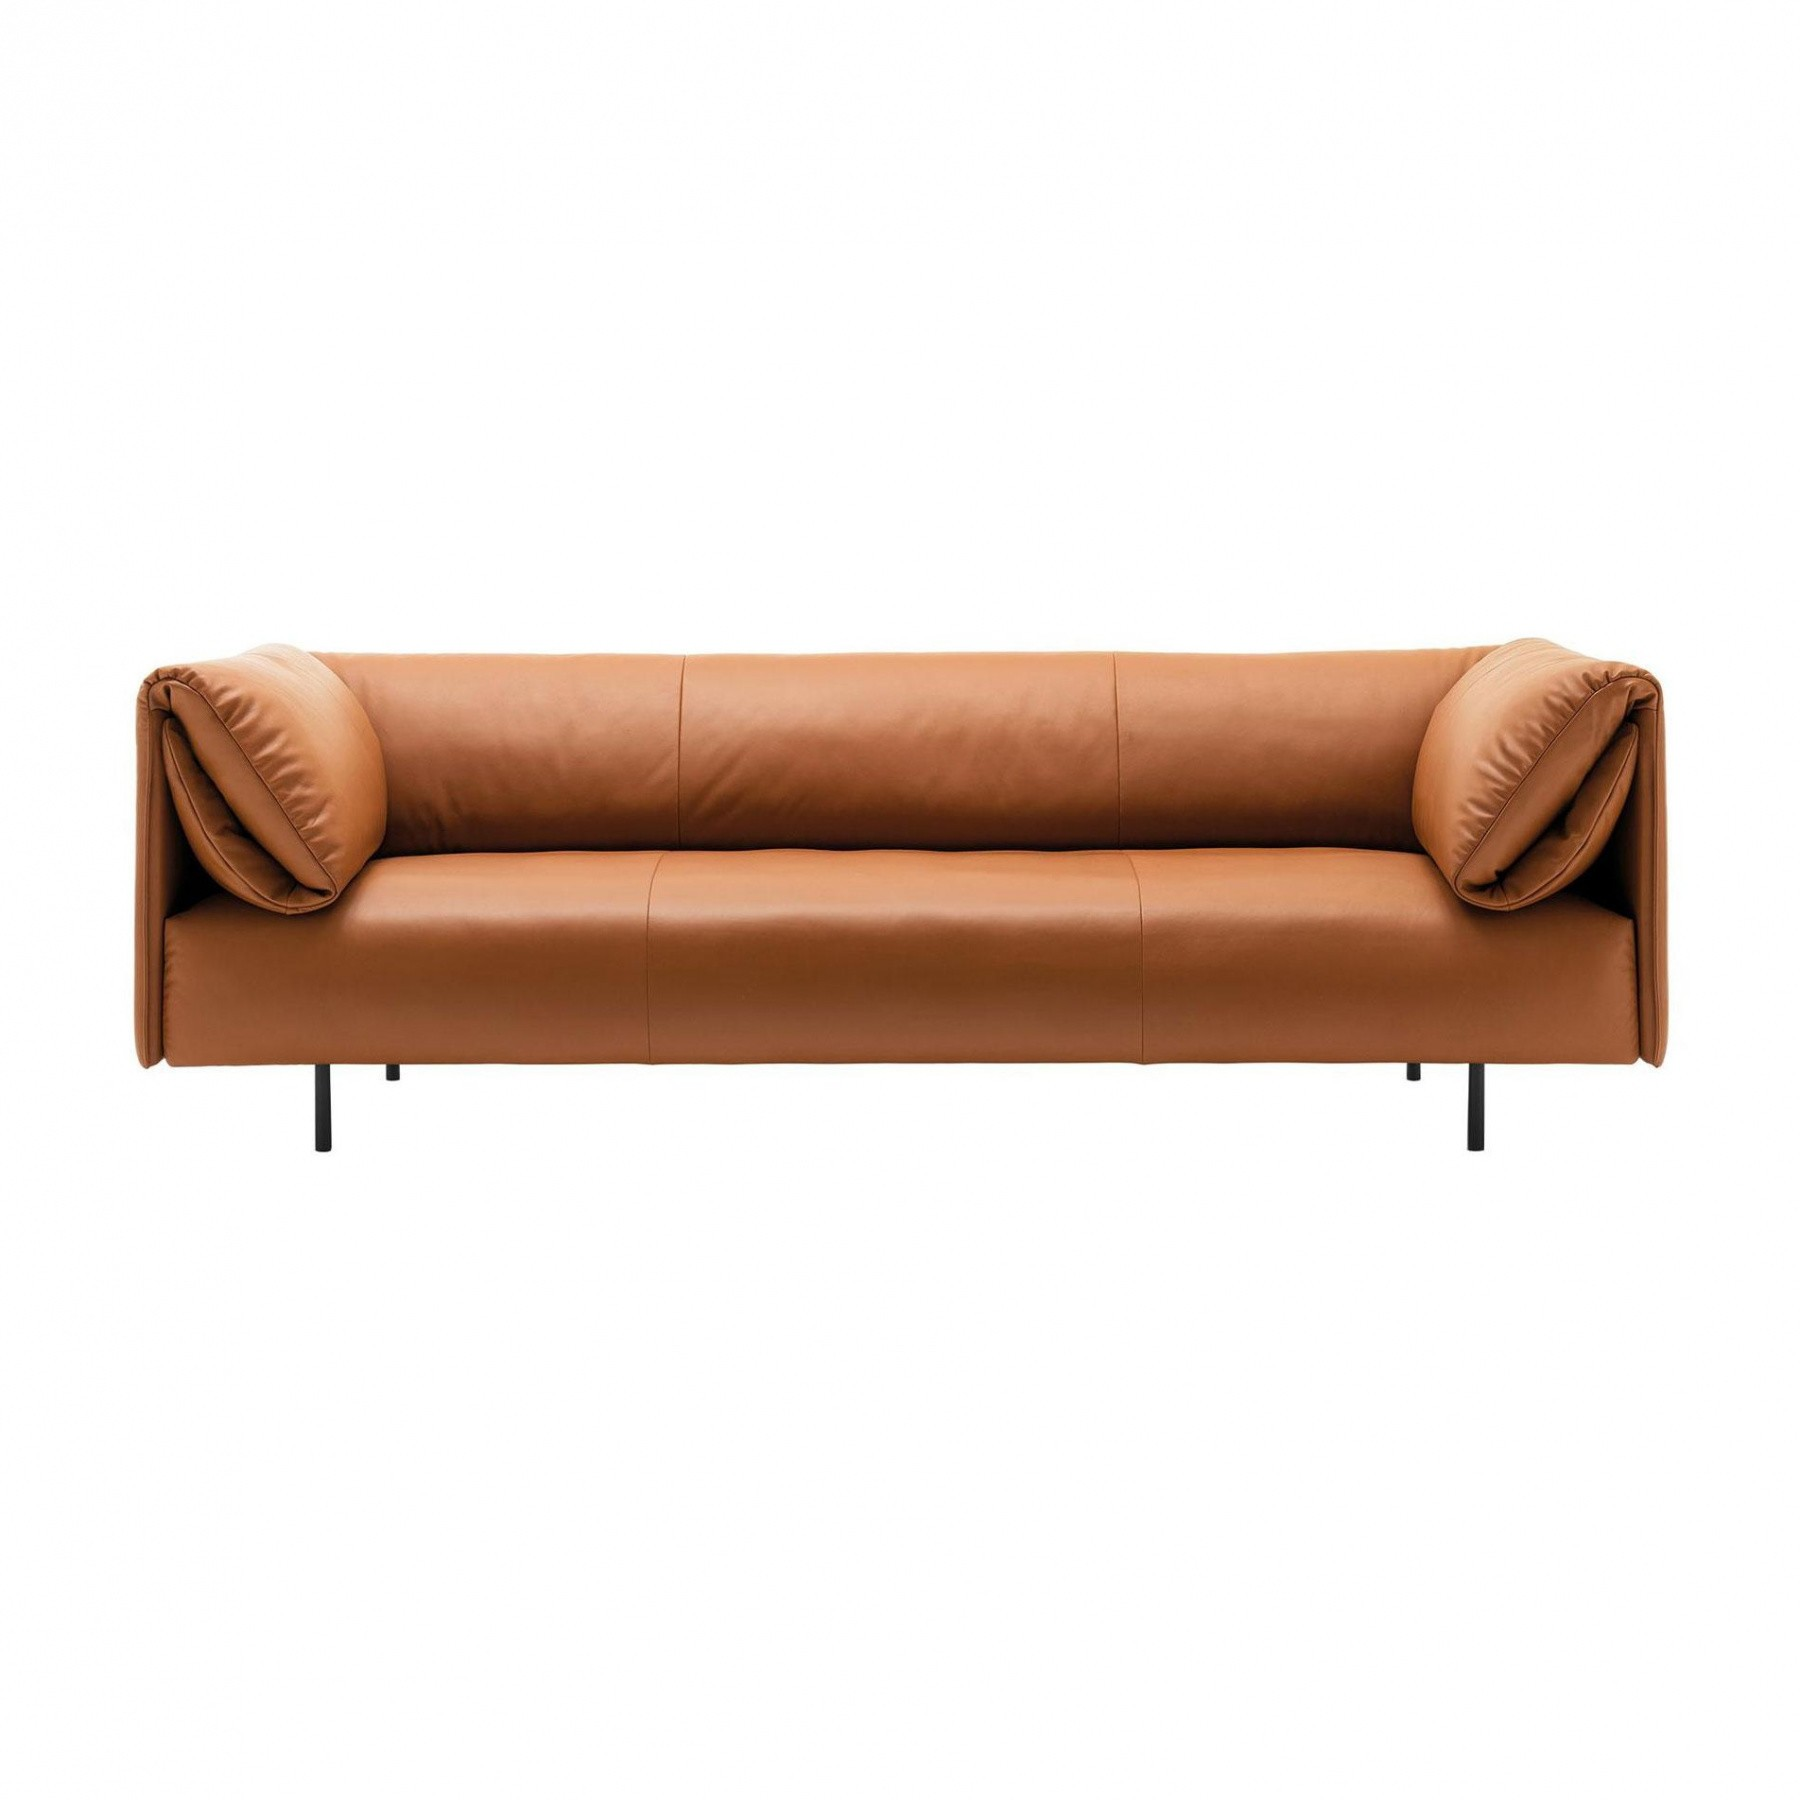 Rolf Benz   Rolf Benz 520 Alma Sofa 4 Seater   Ochre/leather 38.111